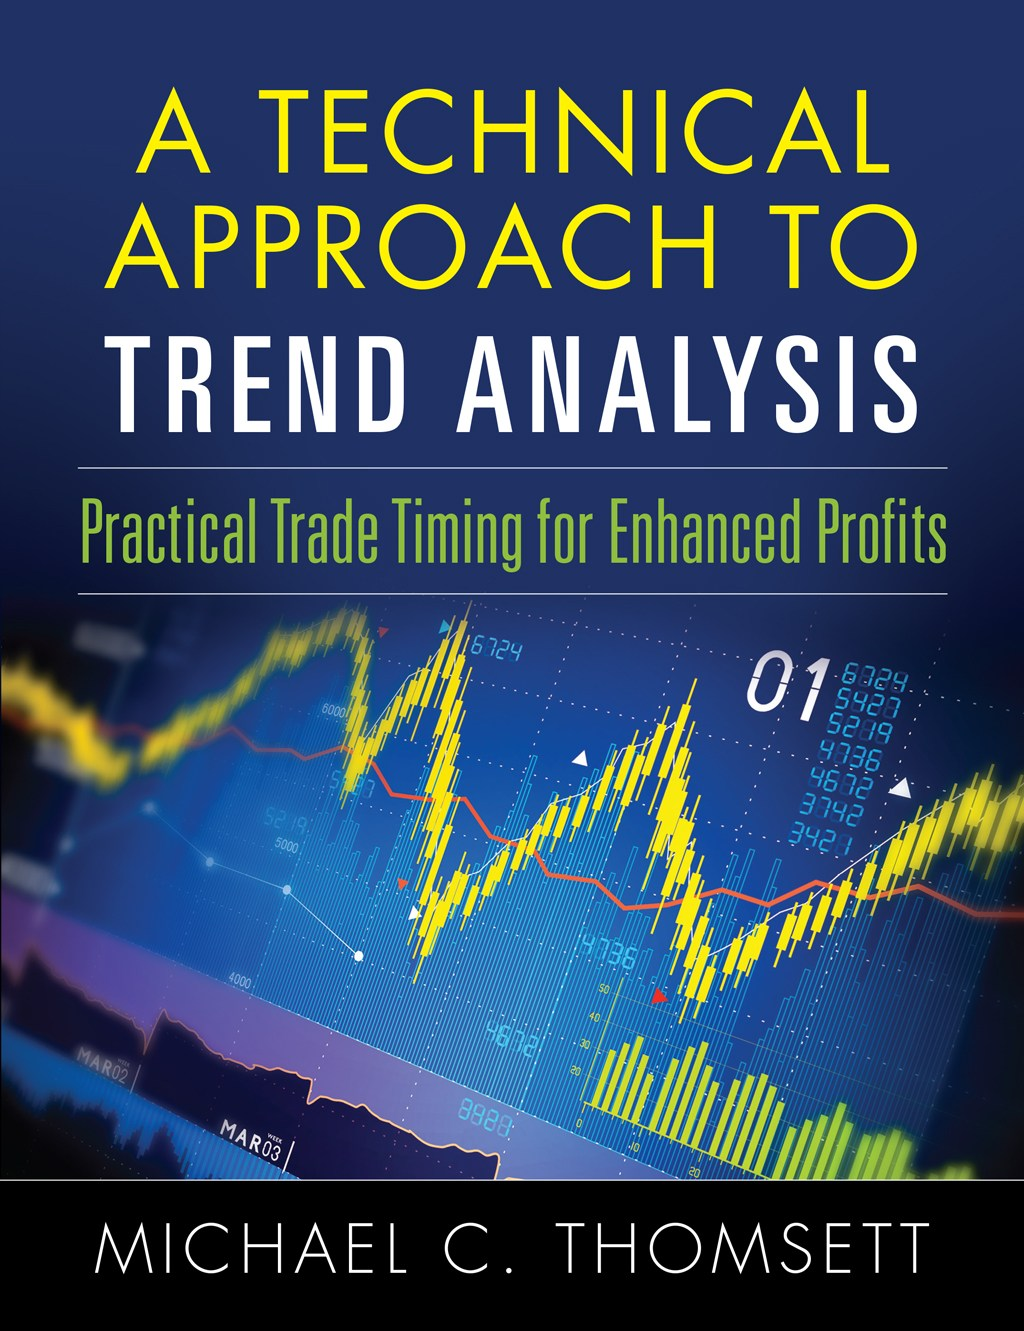 Technical Approach To Trend Analysis, A: Practical Trade Timing for Enhanced Profits